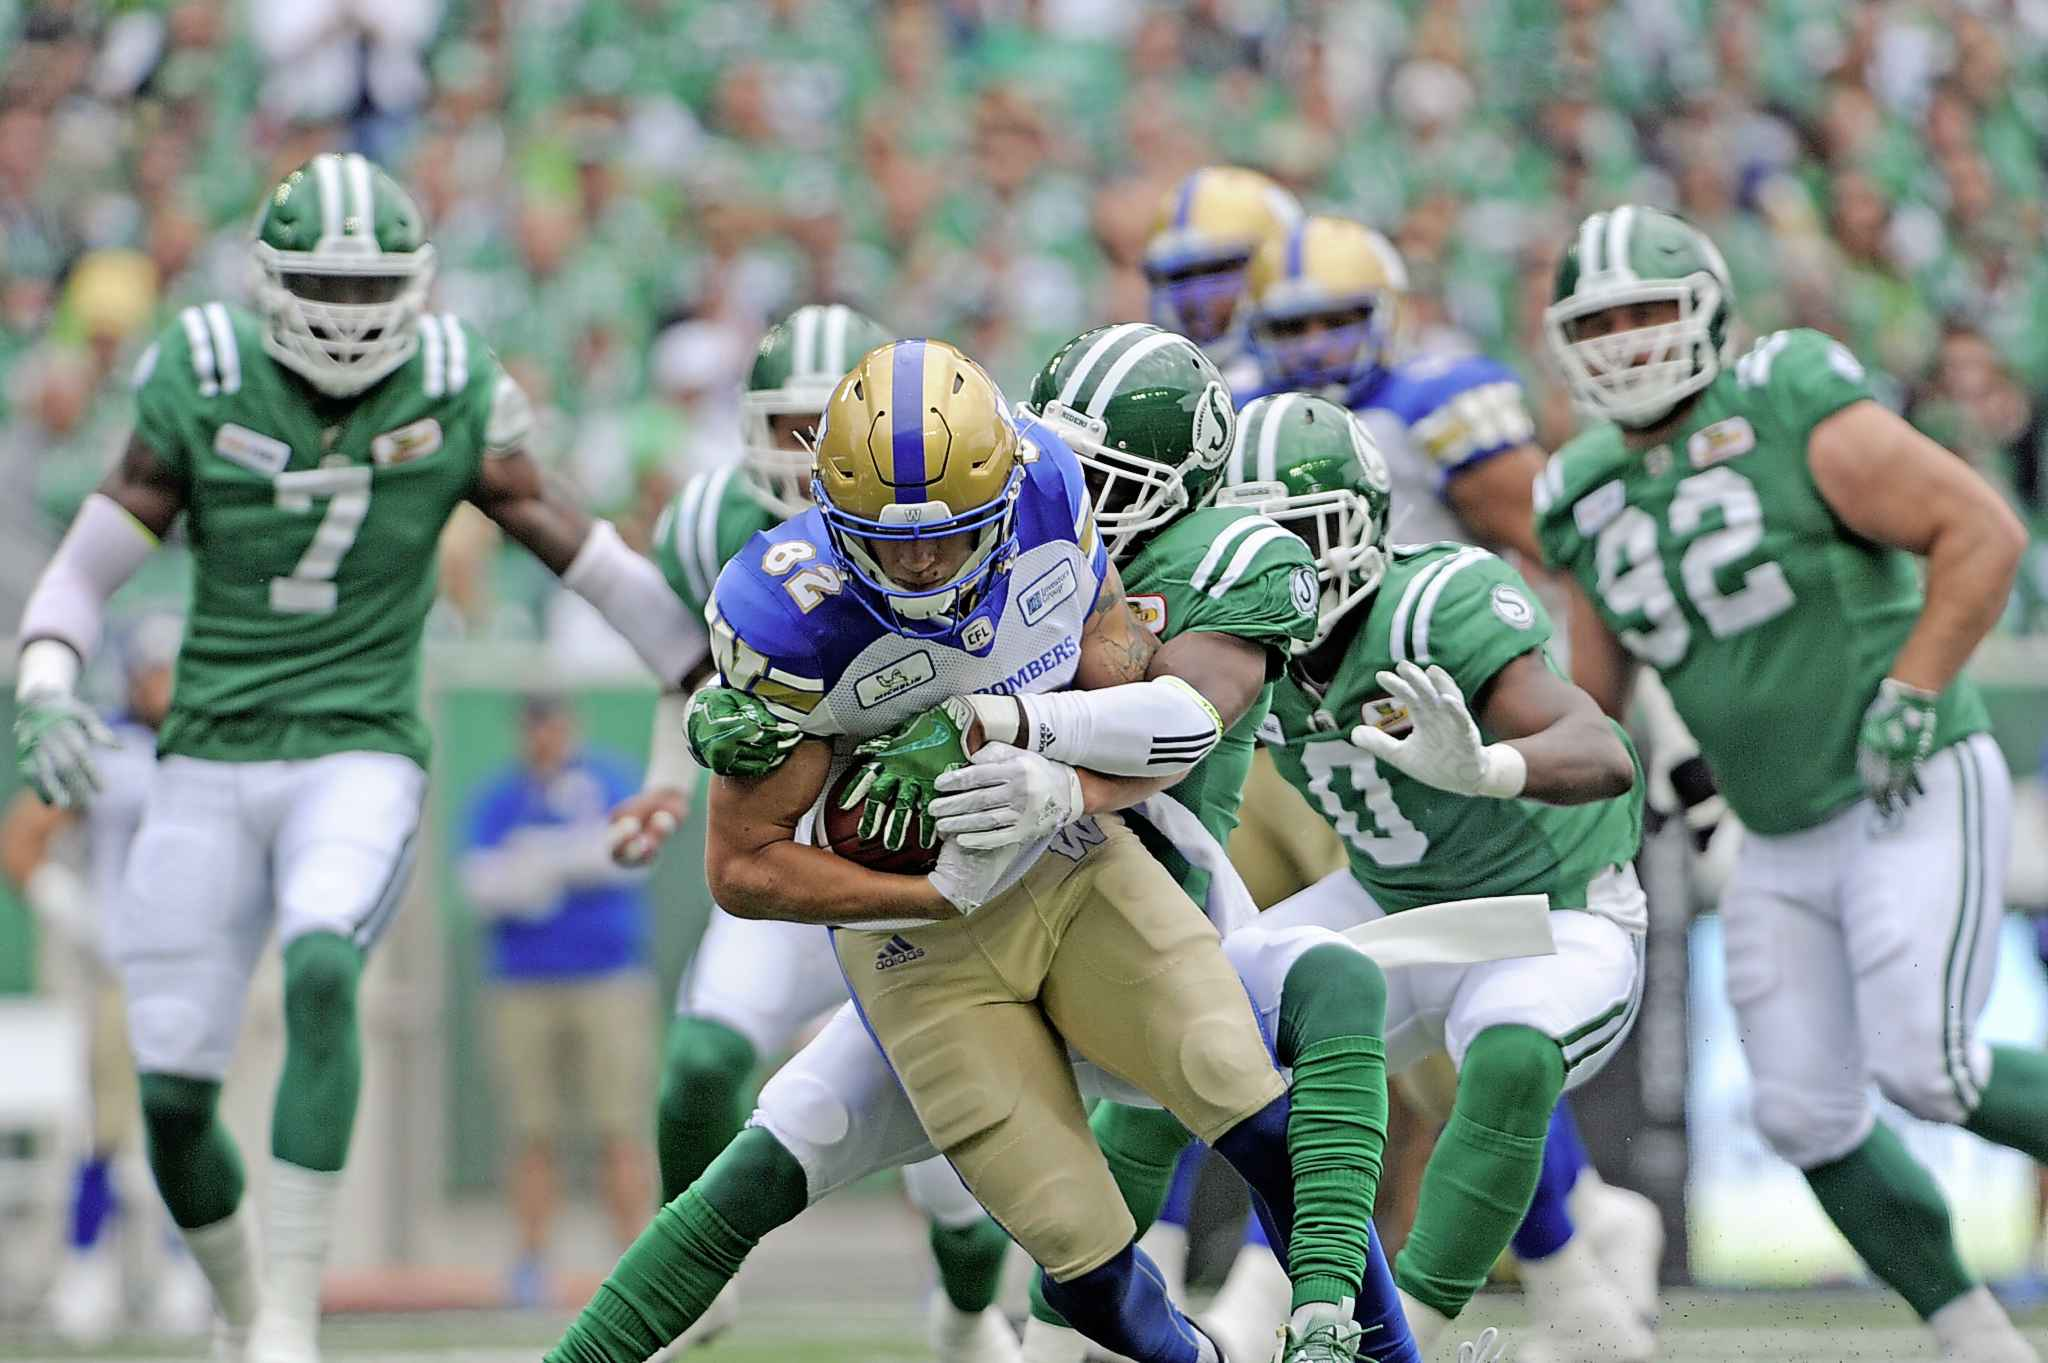 Wolitarsky protects the ball while he runs against the Saskatchewan Roughriders defence.